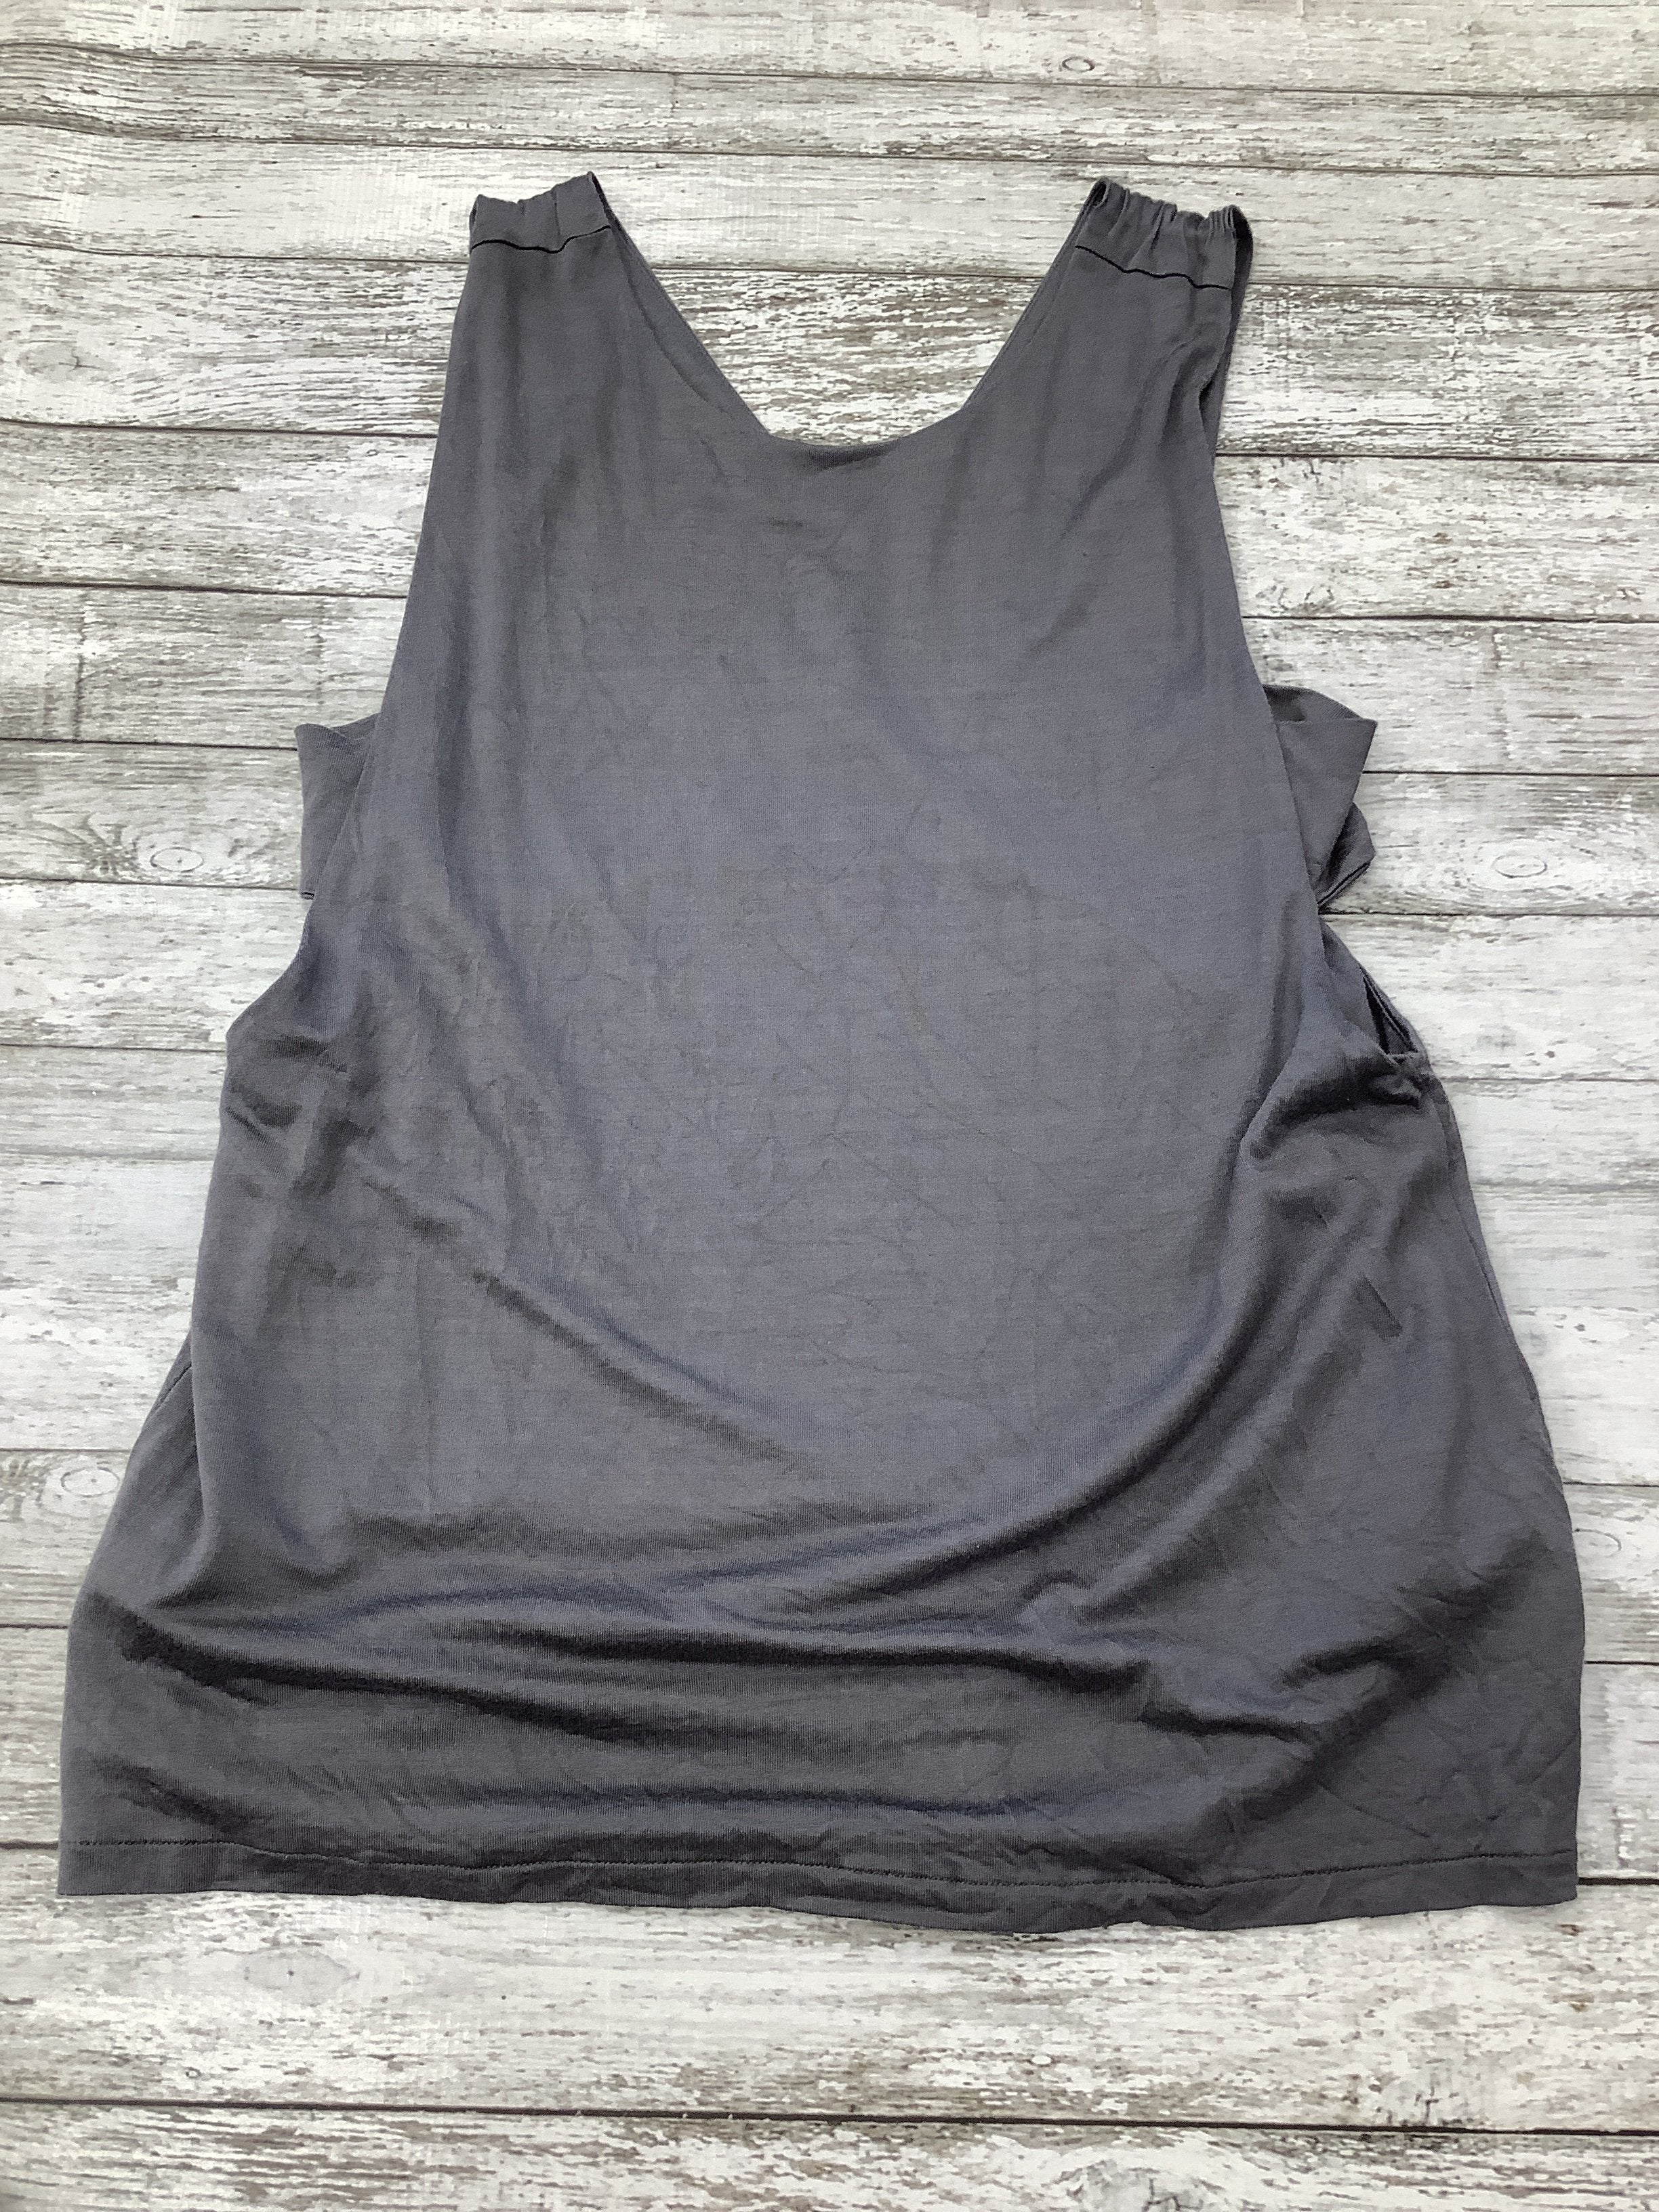 Primary Photo - brand: banana republic , style: top sleeveless , color: grey , size: petite large , sku: 105-2252-104462